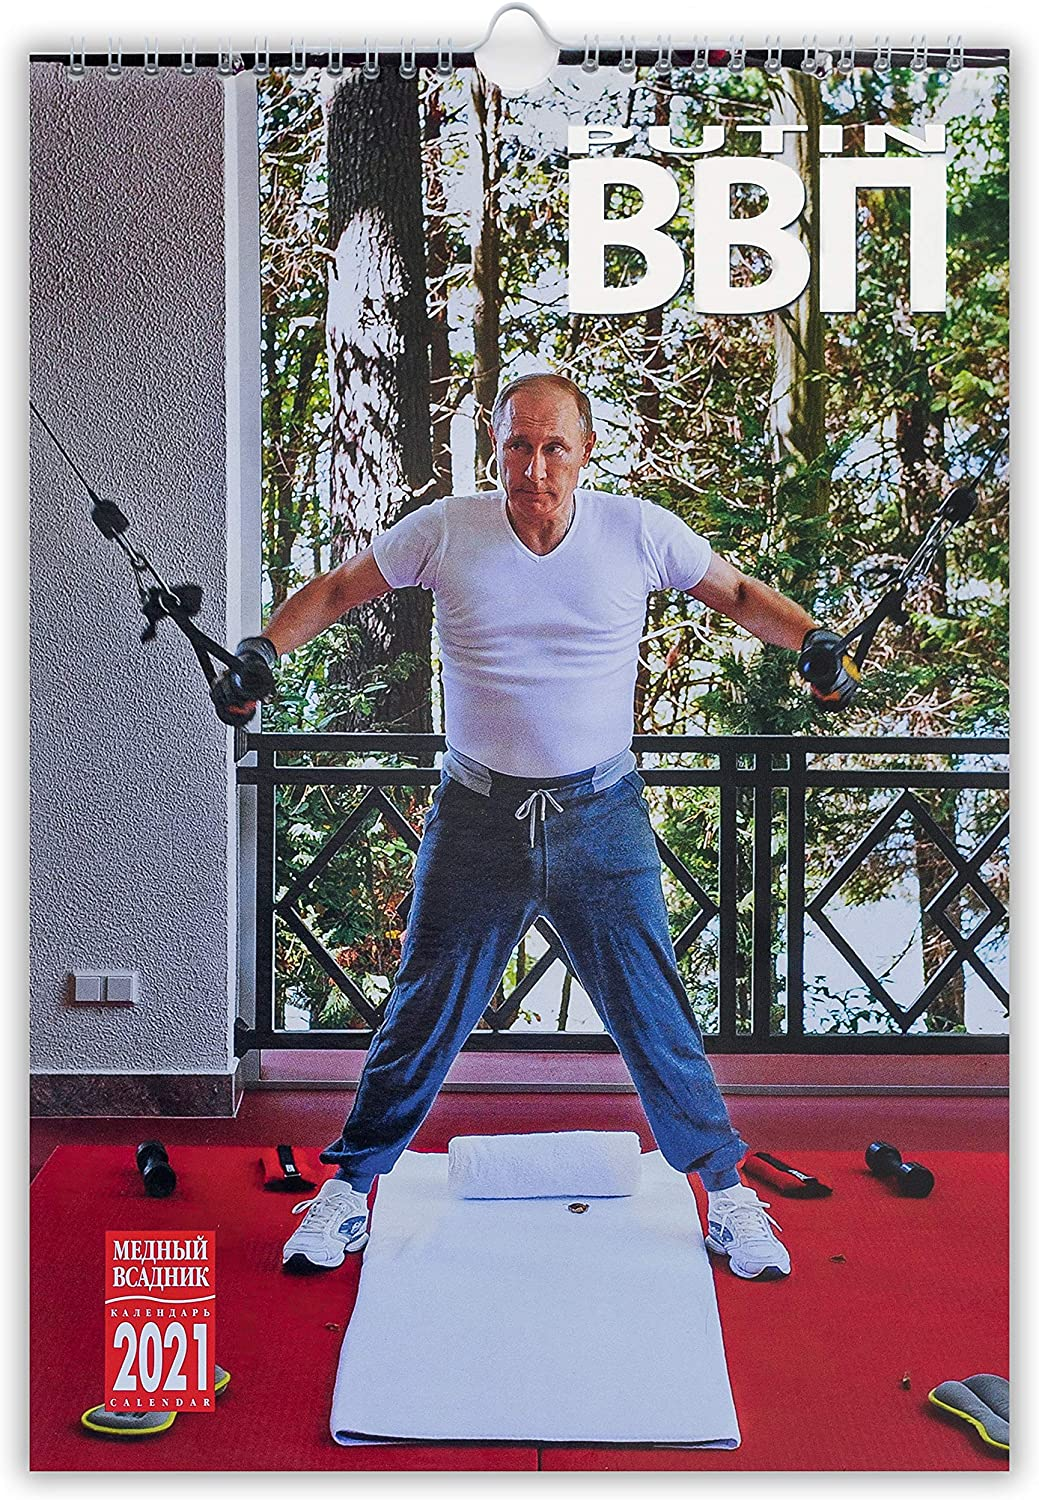 Vladimir Putin Wall Calendar for 2021, Size: 9.0 x 13.0 inches (23.0×33,5cm) (in The English and Russian Languages)